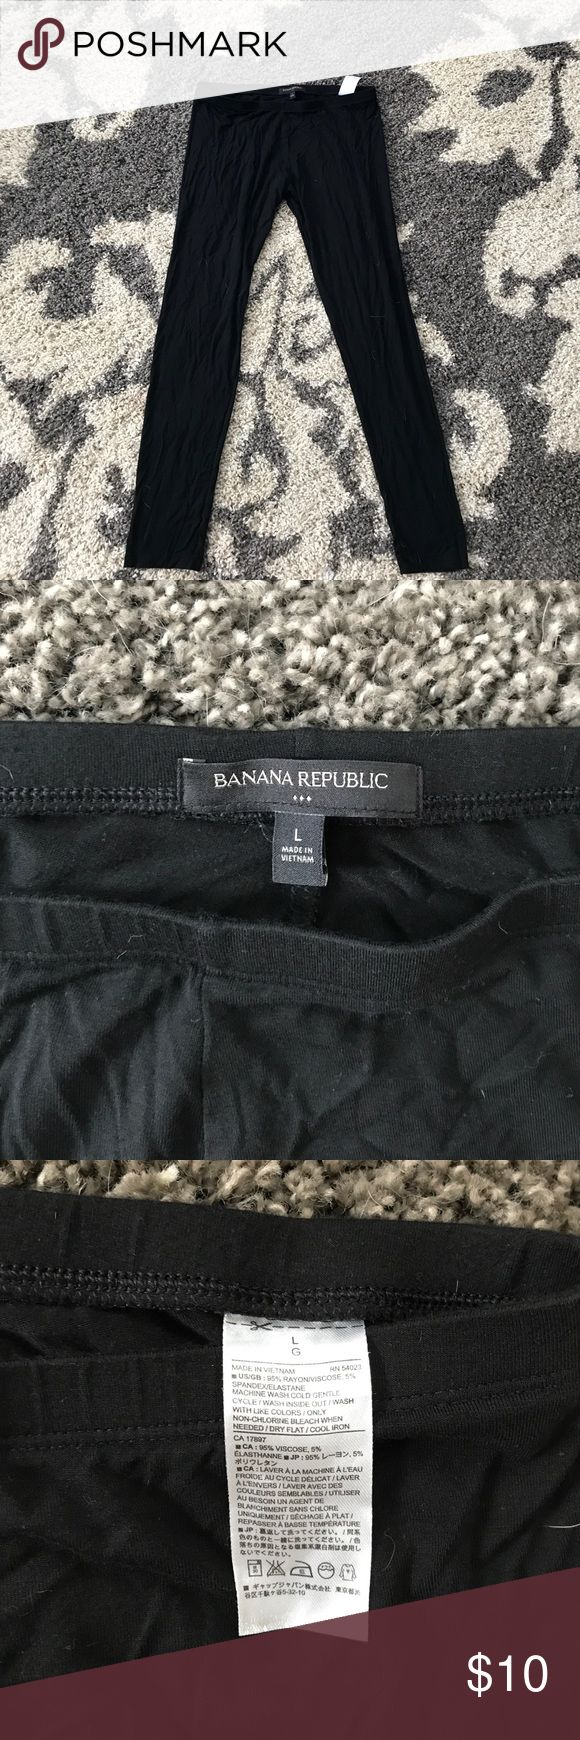 Banana Republic leggings Spandex/elastic leggings from BR, size Large. Worn once. Not a very thick material, best used for loungewear and under a dress or tunic. Banana Republic Pants Leggings